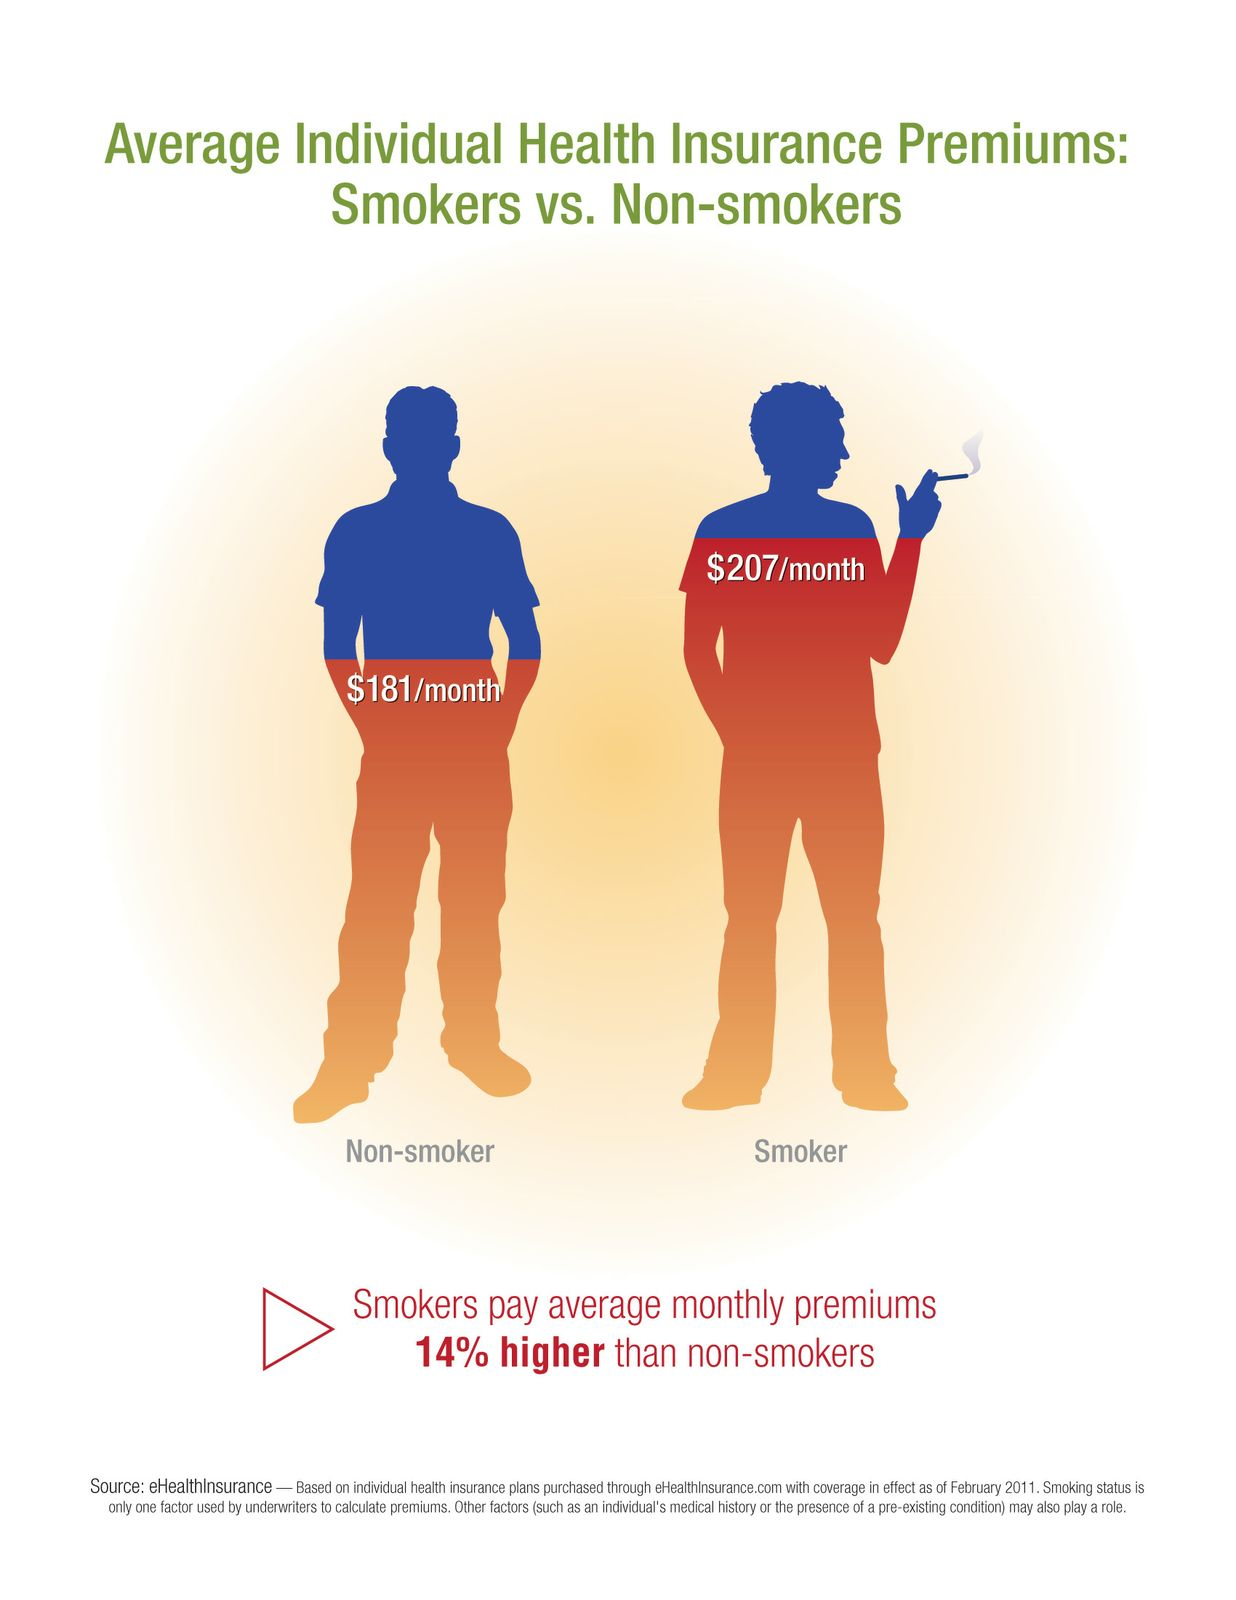 Average Premiums: Smokers vs Non-Smokers